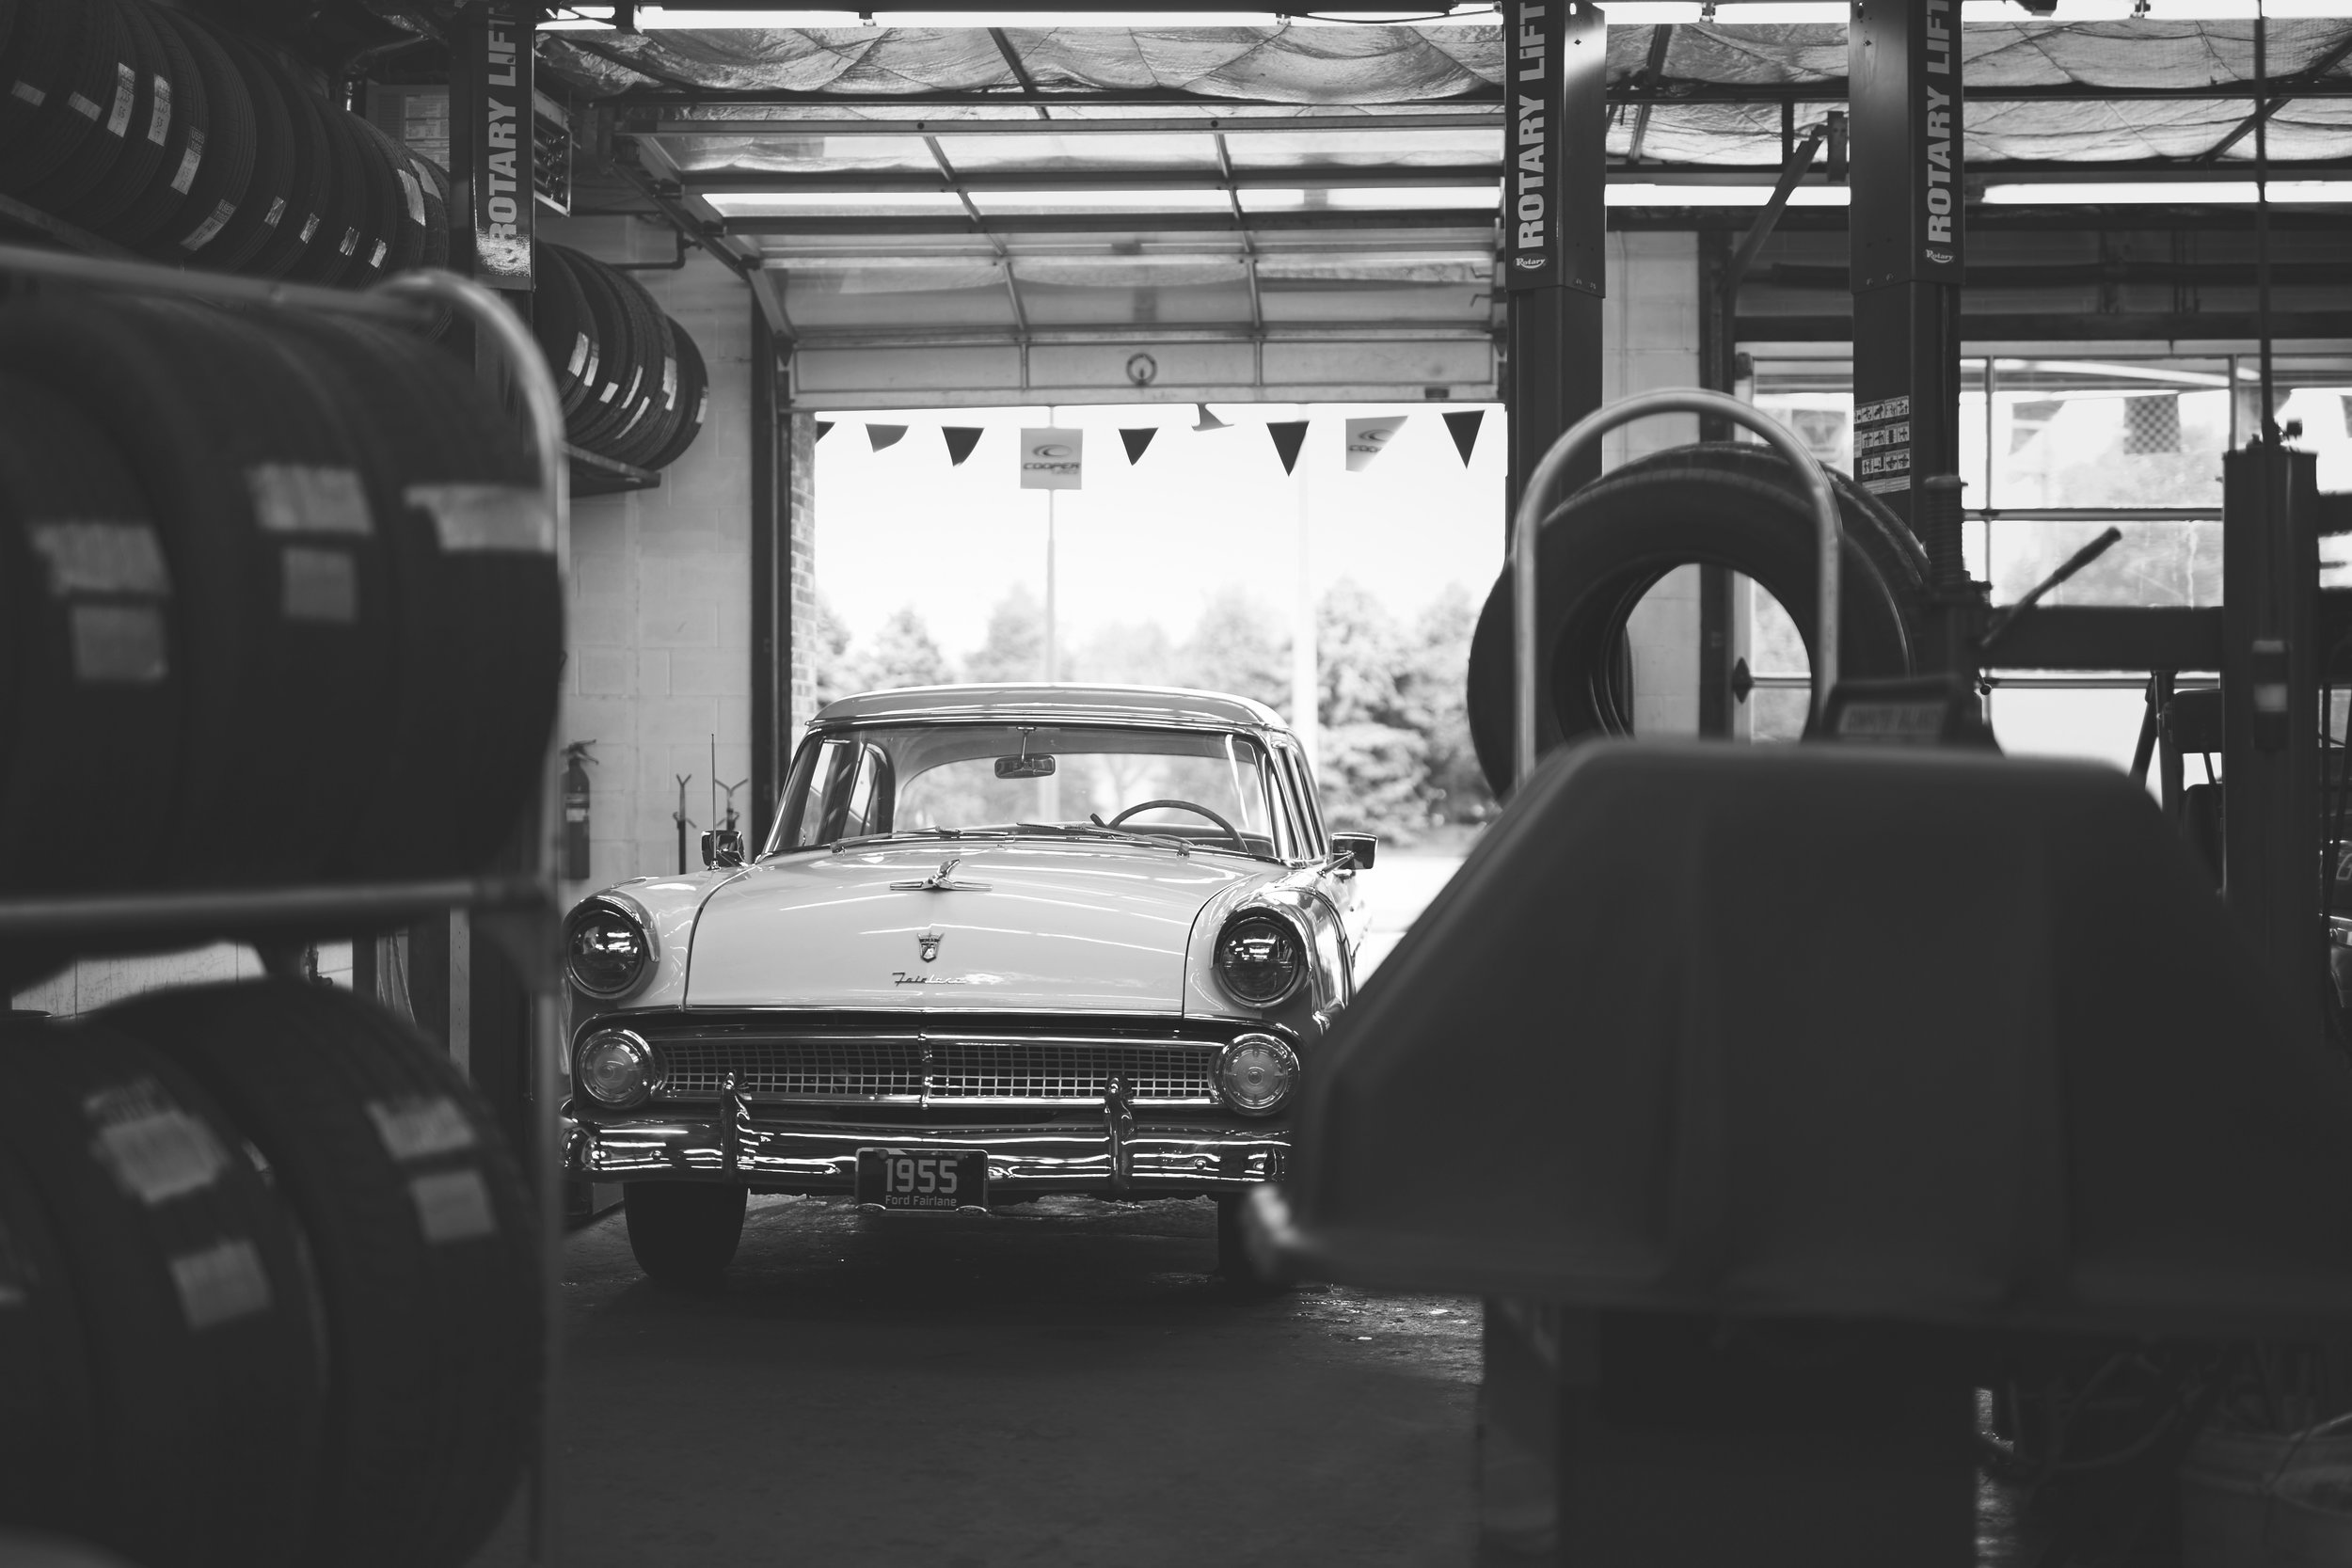 Black and white auto commercial photo of vintage car in garage in Springfield, Illinois.